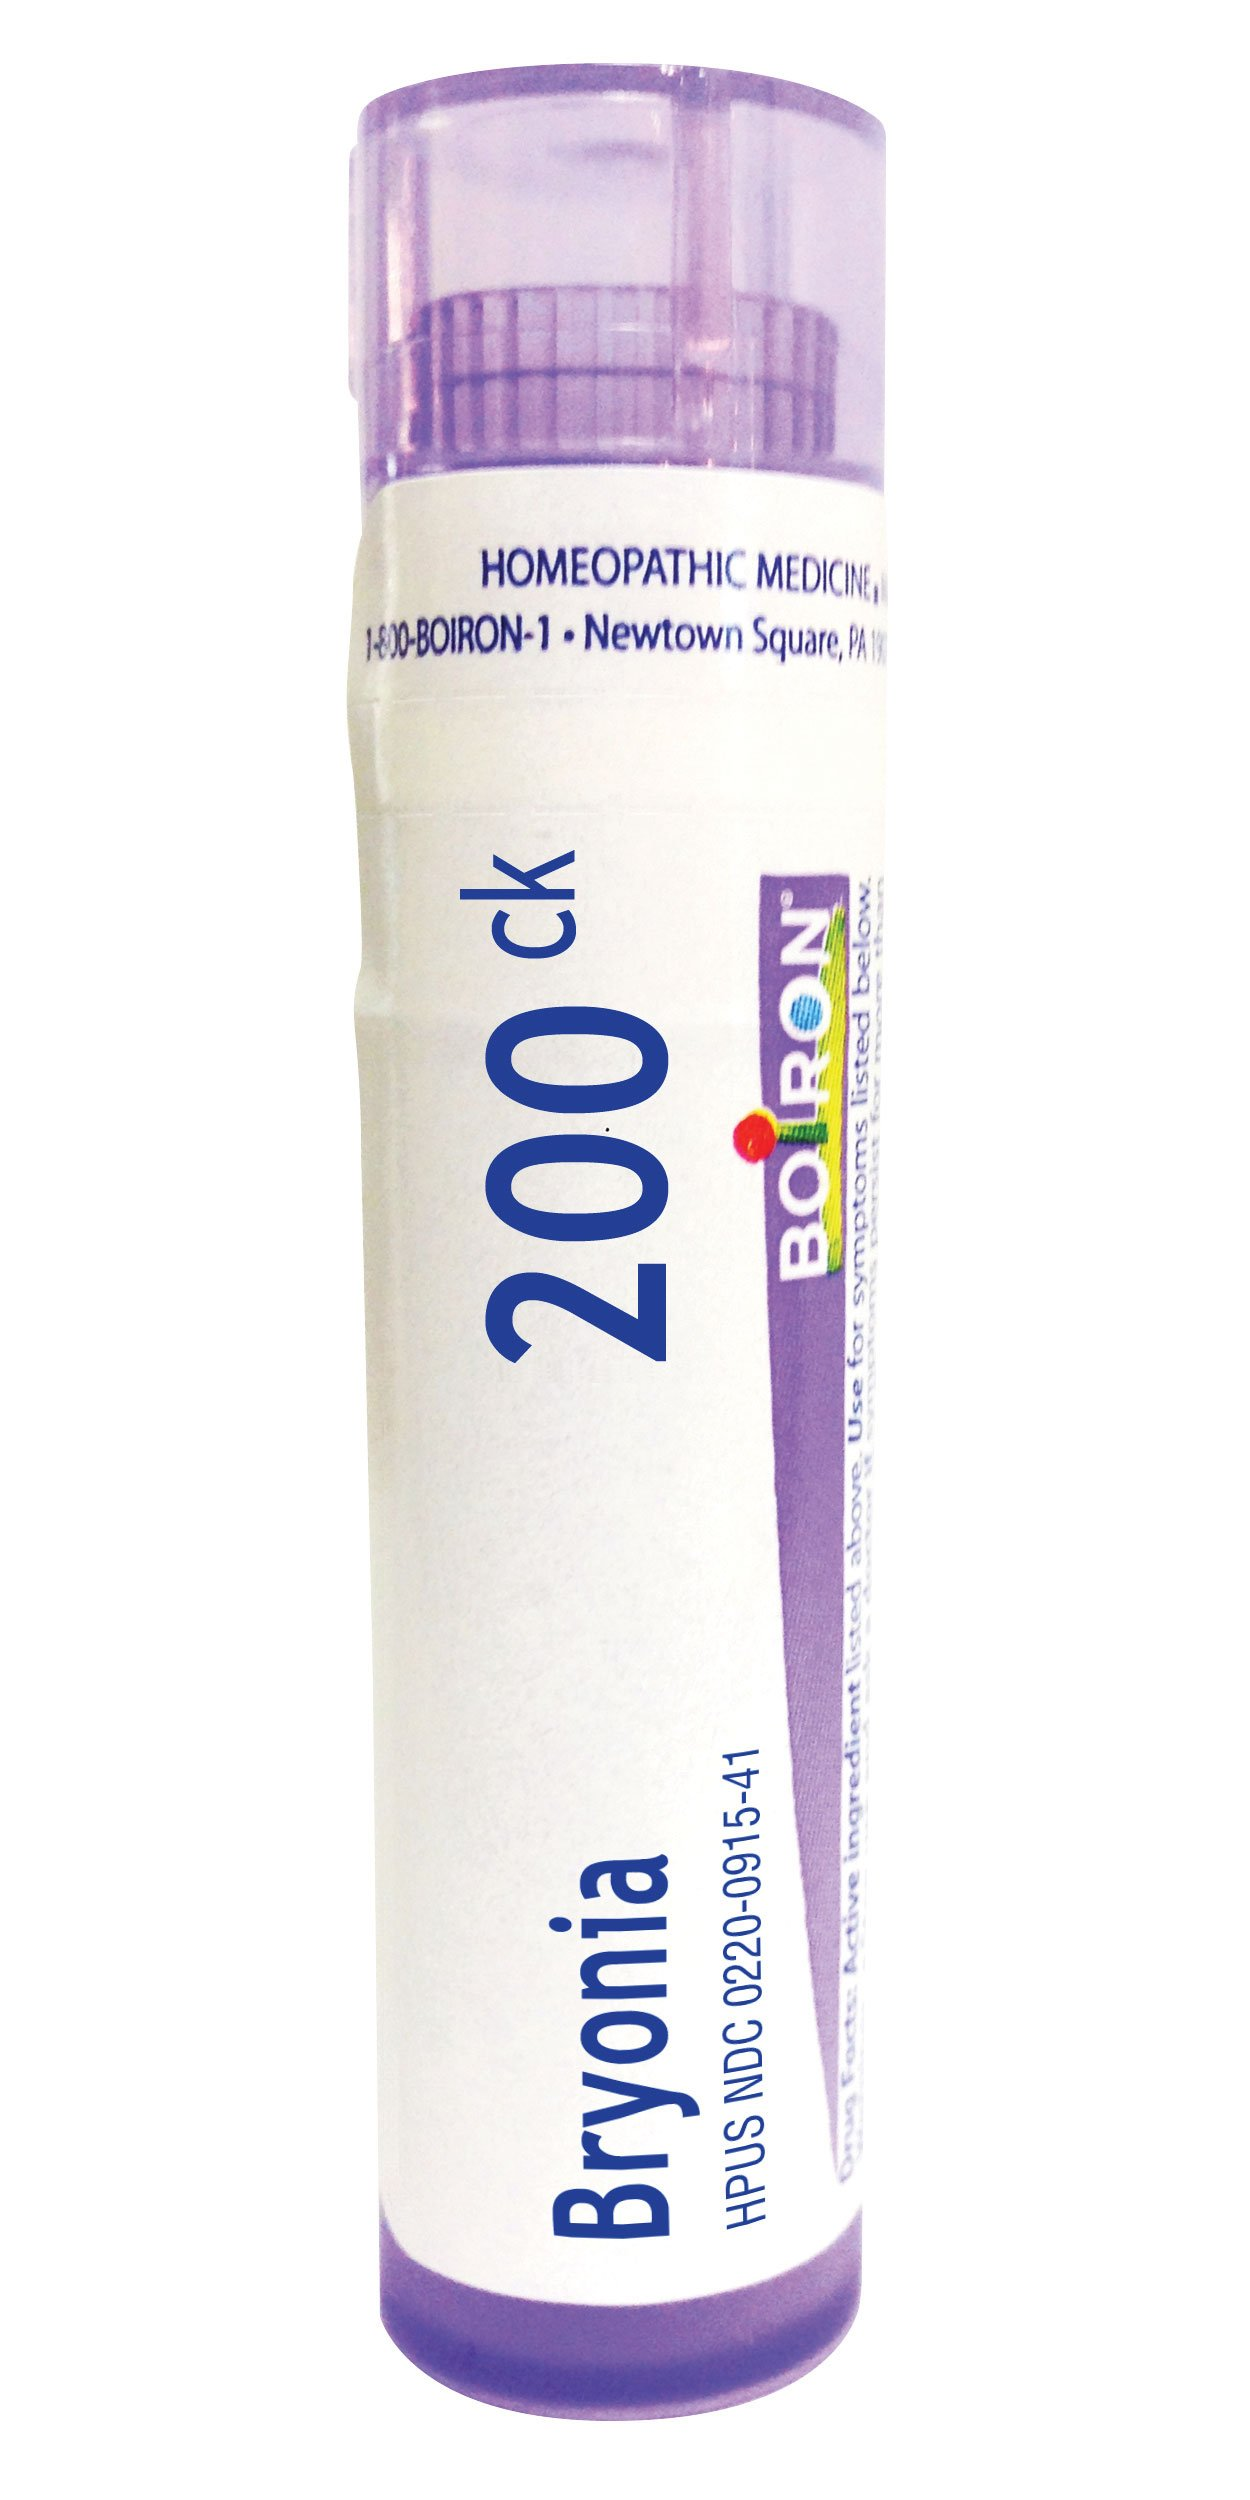 Boiron Bryonia 200C, 80 Pellets, Homeopathic Medicine for Muscle and Joint Pain